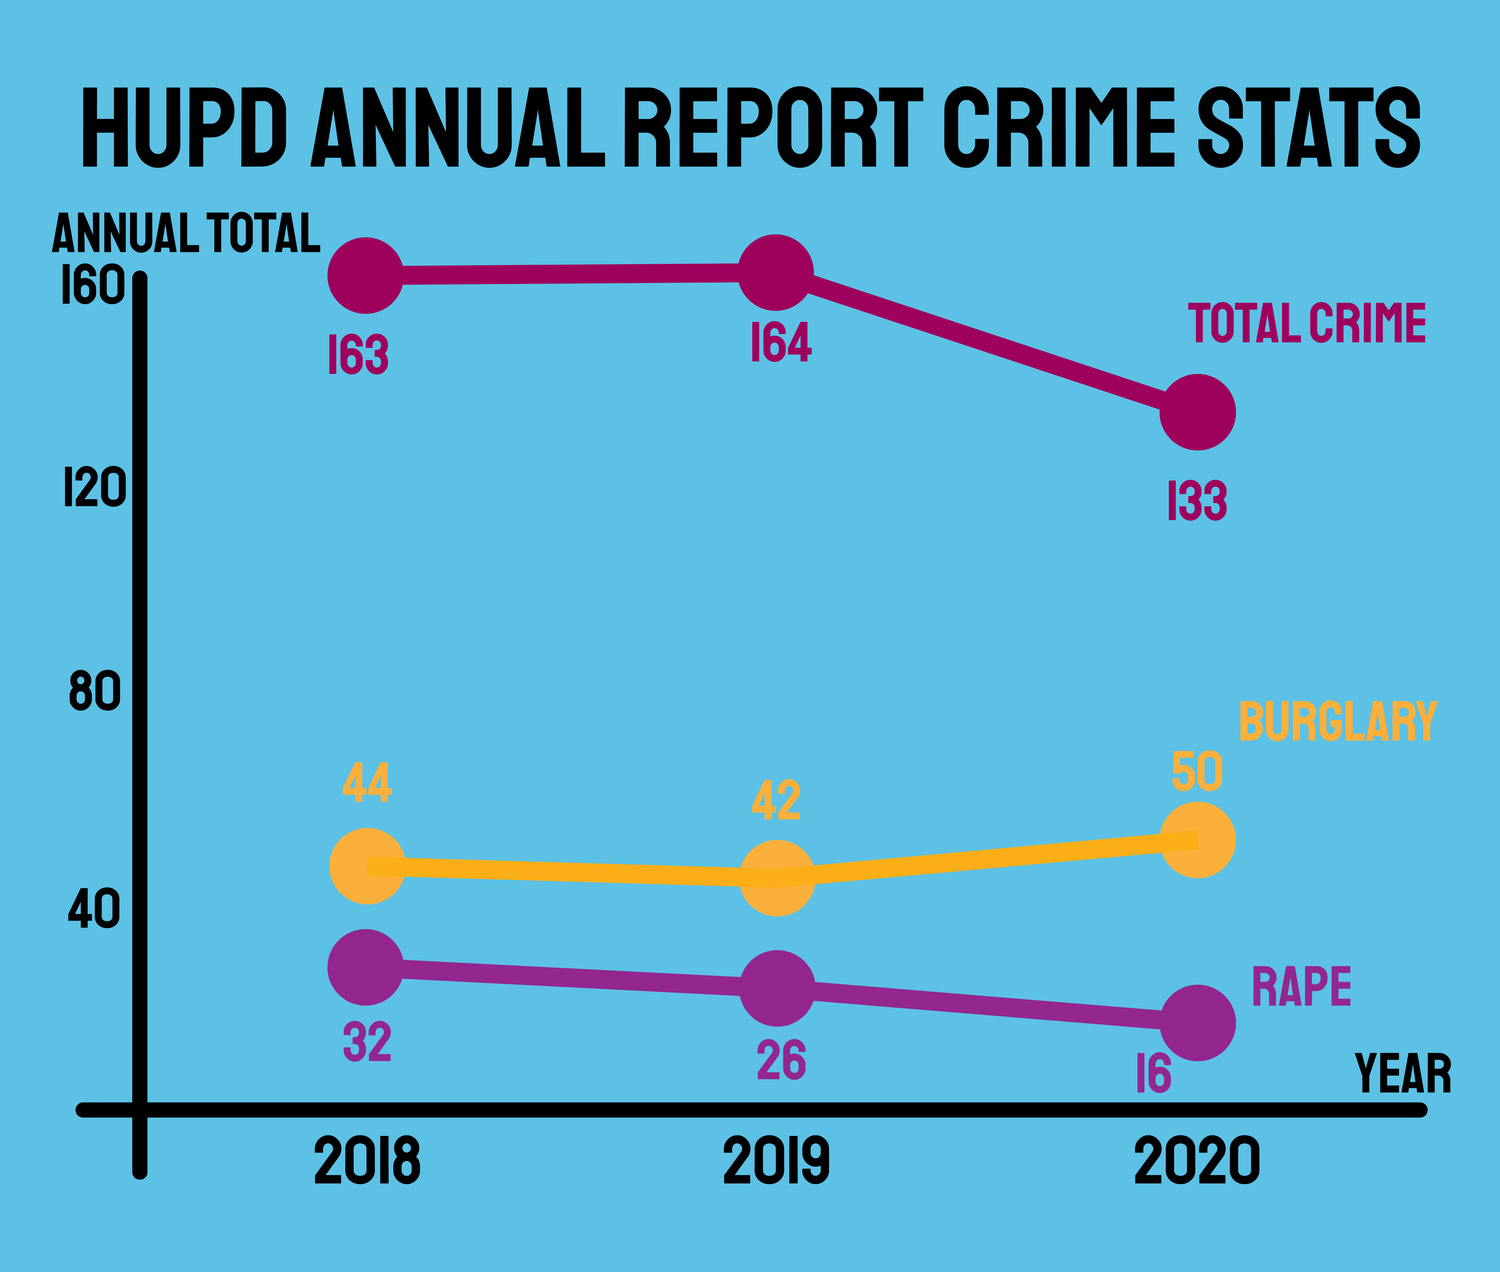 The University saw a decrease in the total number of crimes reported to the Harvard University Police Department.